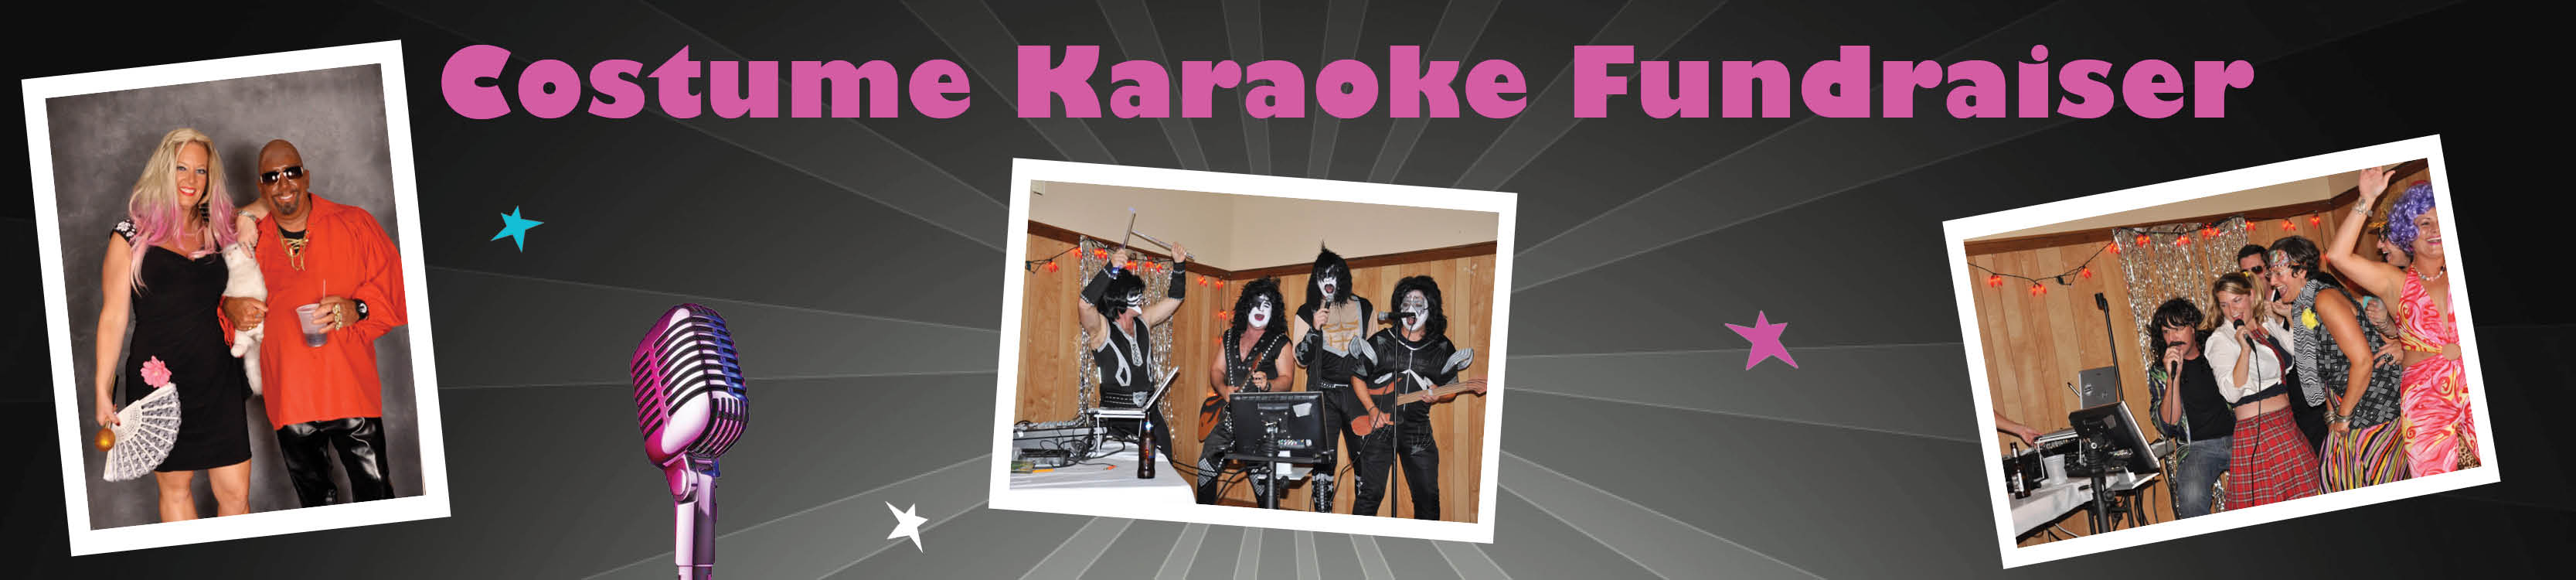 Franklin teens raising funds - Karaoke - April 1